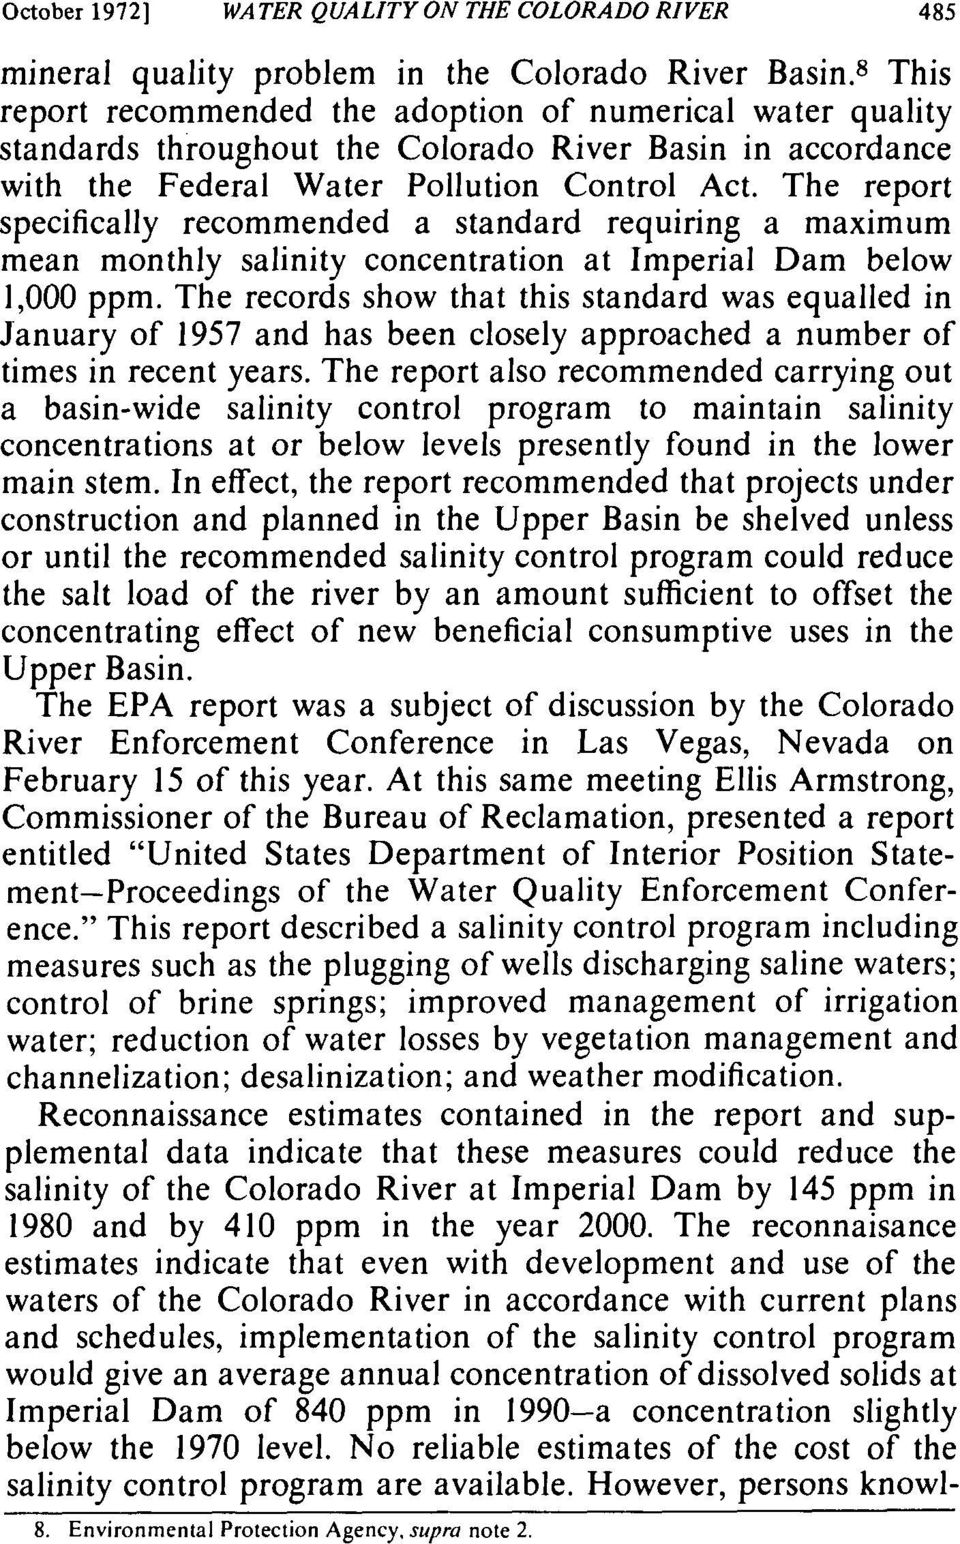 The report specifically recommended a standard requiring a maximum mean monthly salinity concentration at Imperial Dam below 1,000 ppm.